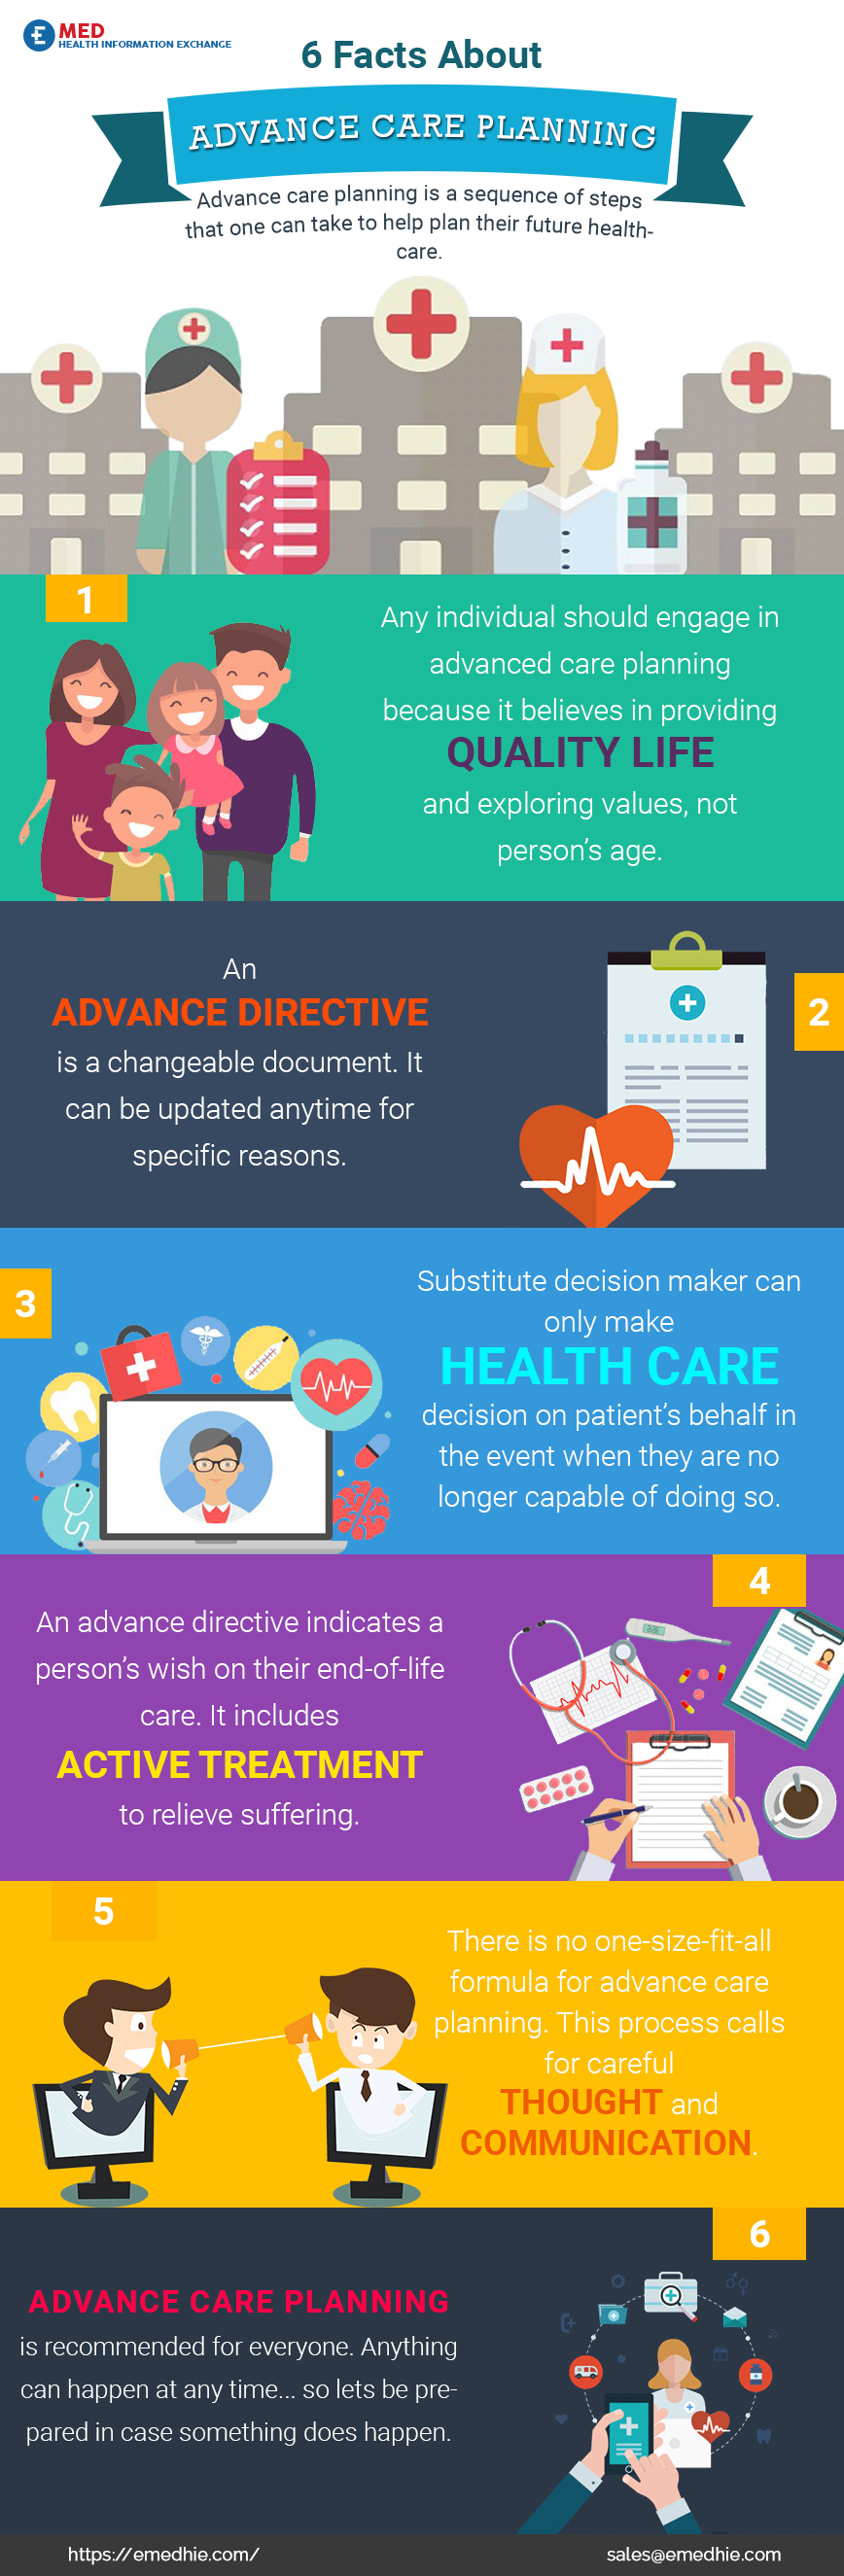 Advance care planning is a sequence of steps that one can